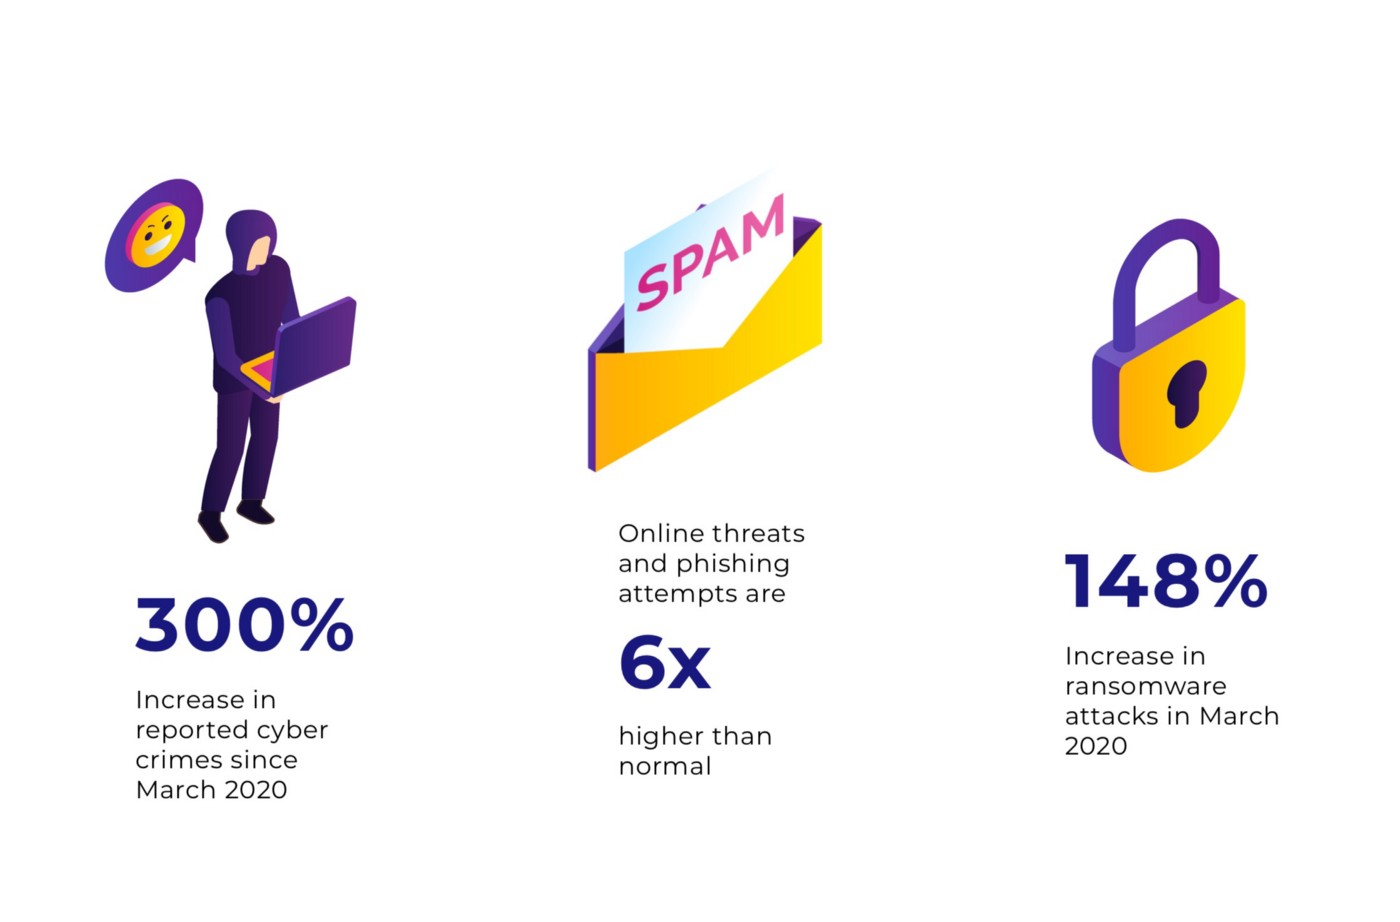 300% increase in reported cyber crimes. Online threats and phishing attempts are 6x higher. 148% increase in ransomware